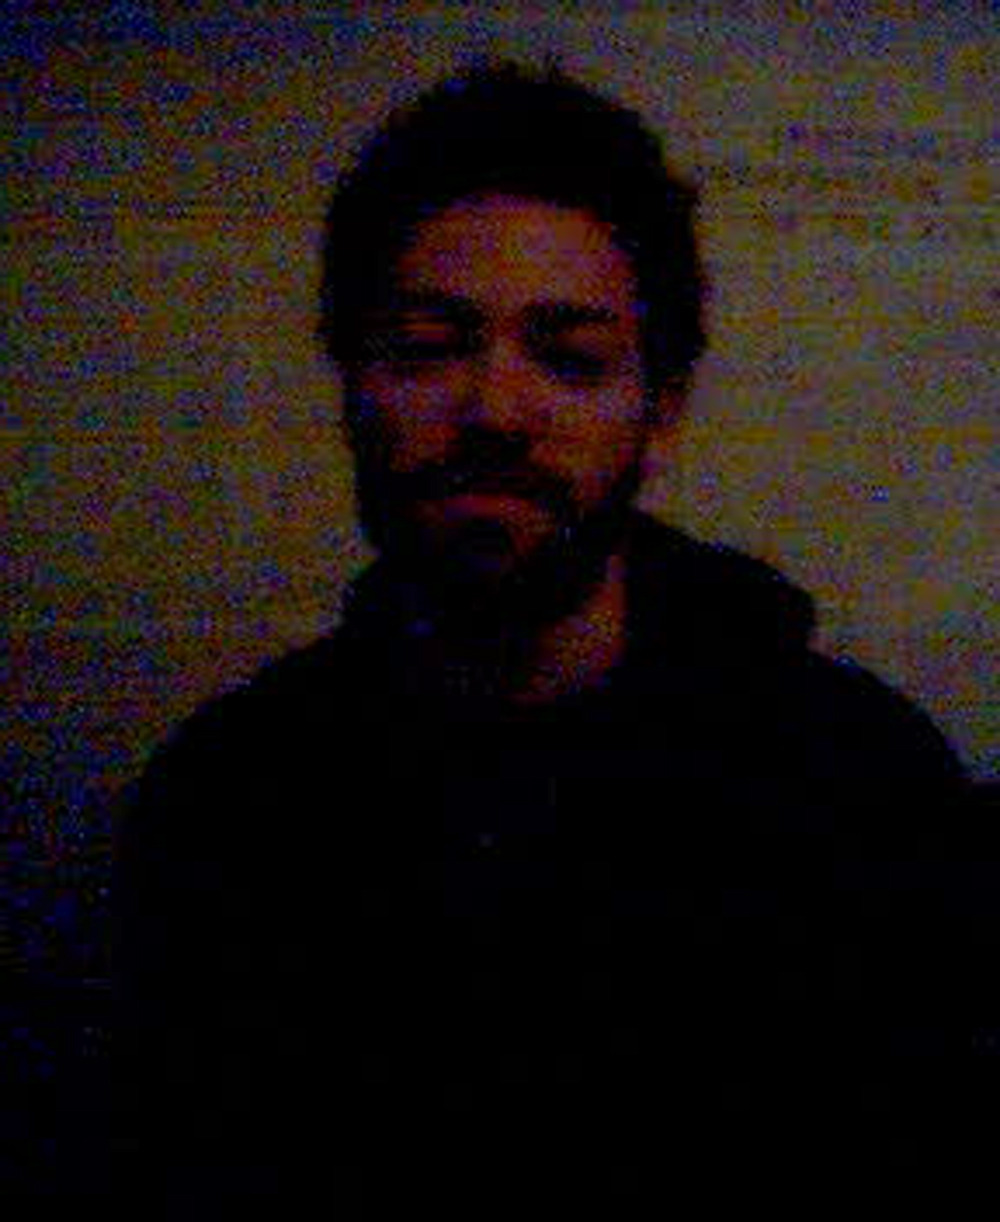 Portrait of the amazing beatboxer Taylor Mcferrin after his TEDxHarlem performance.